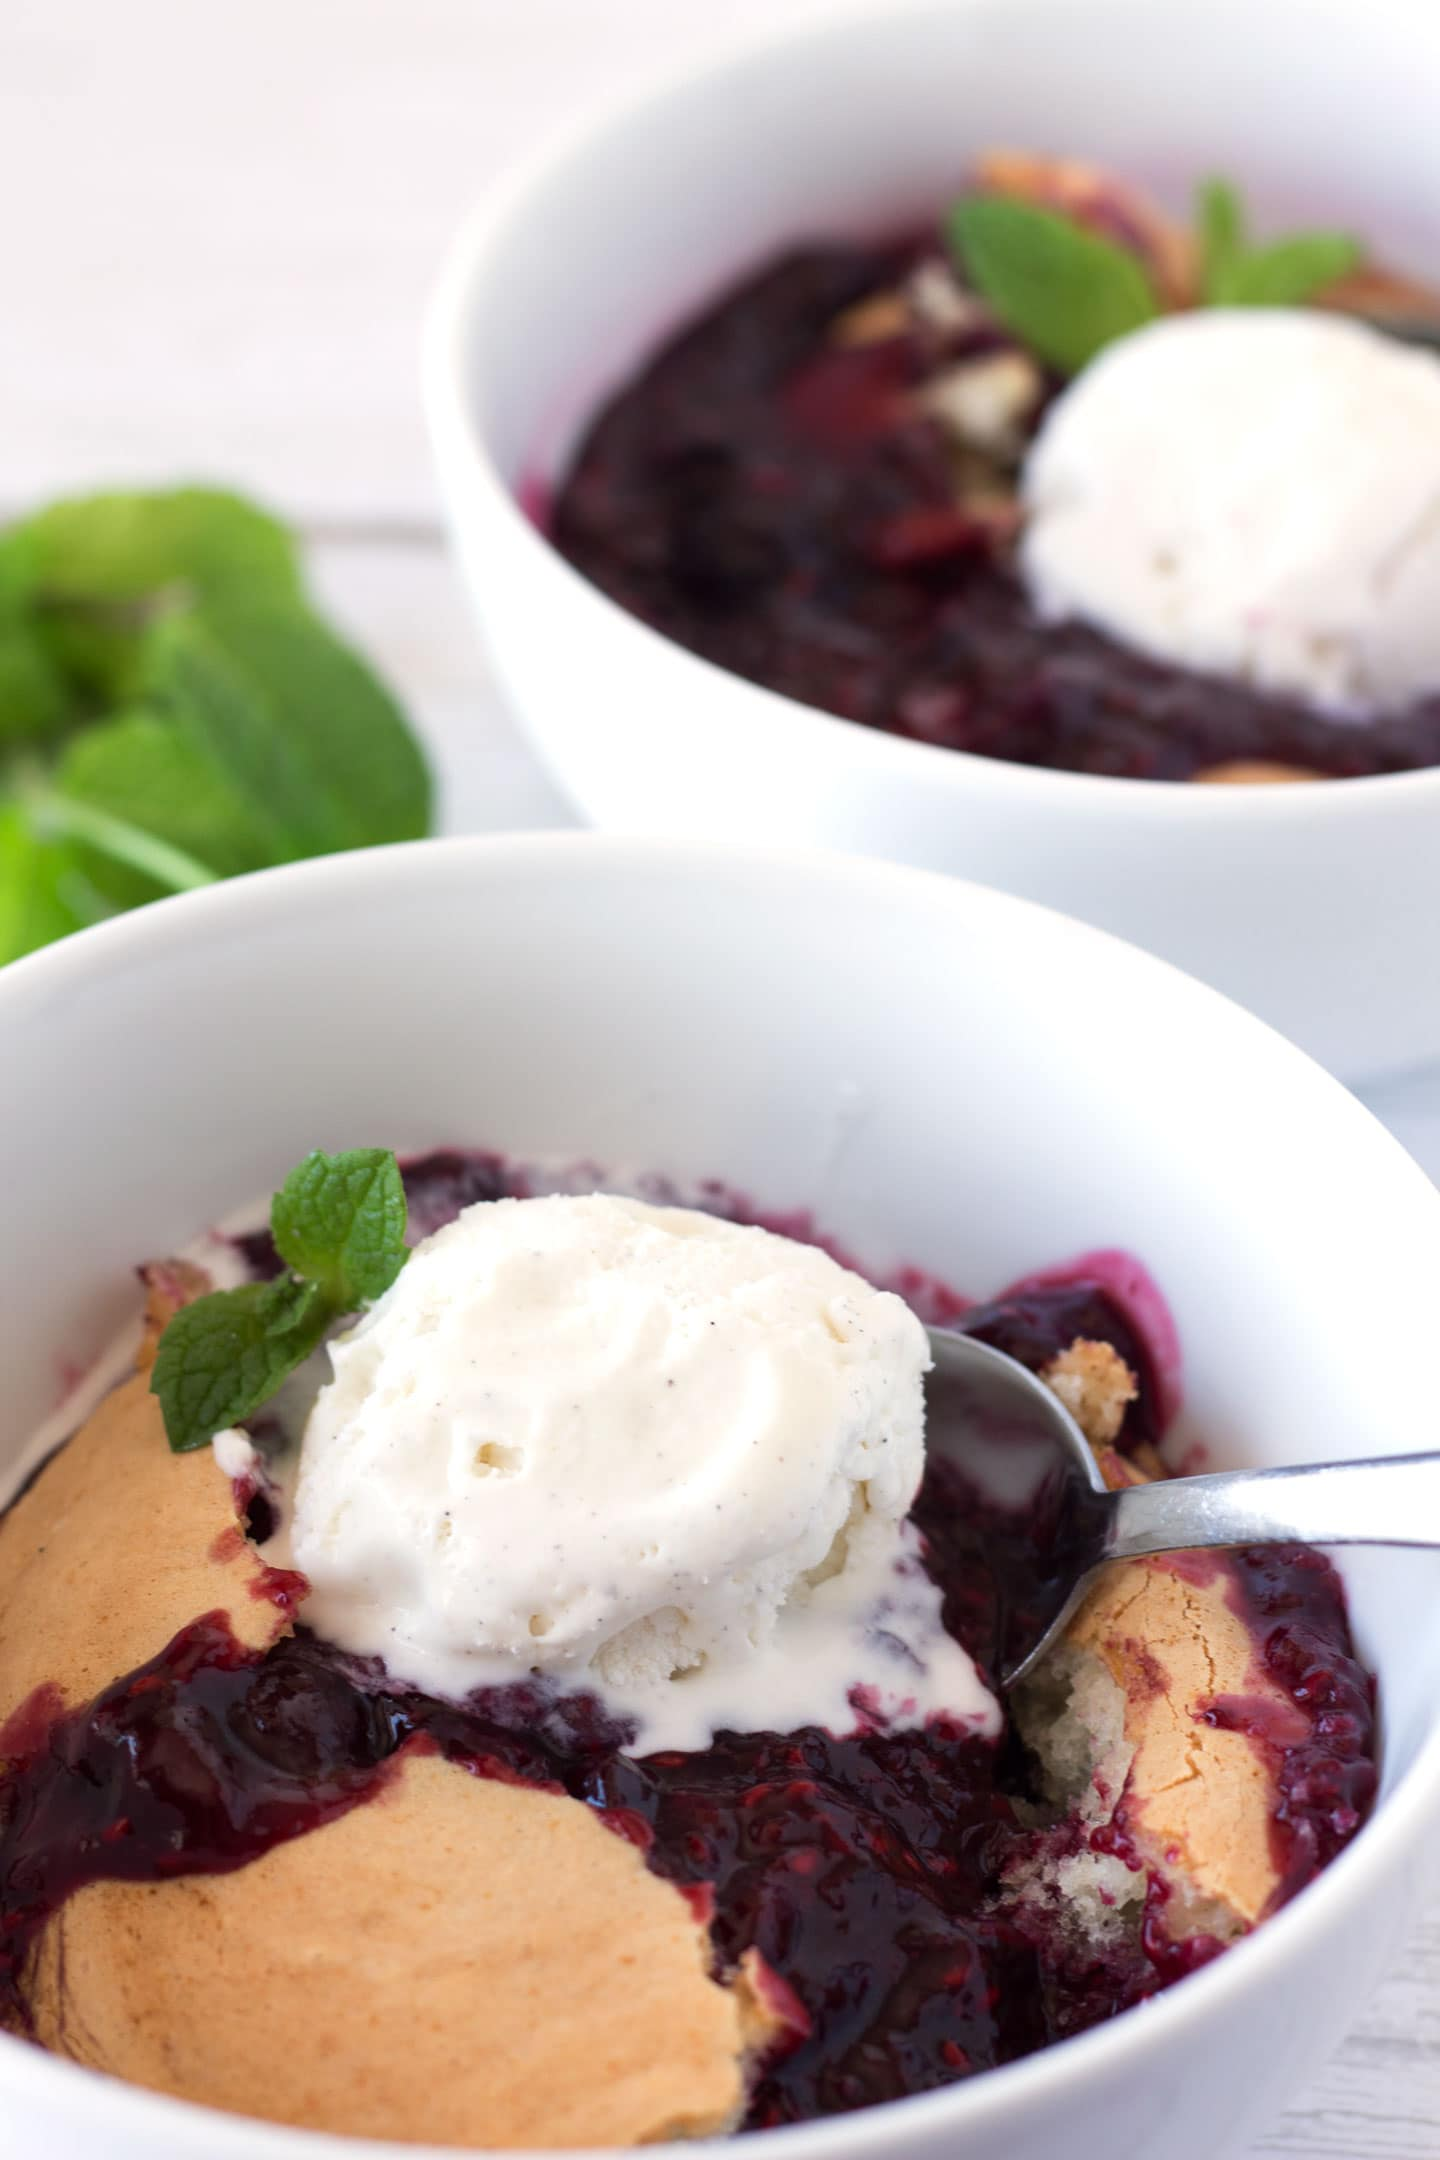 Two bowls of berry cobbler